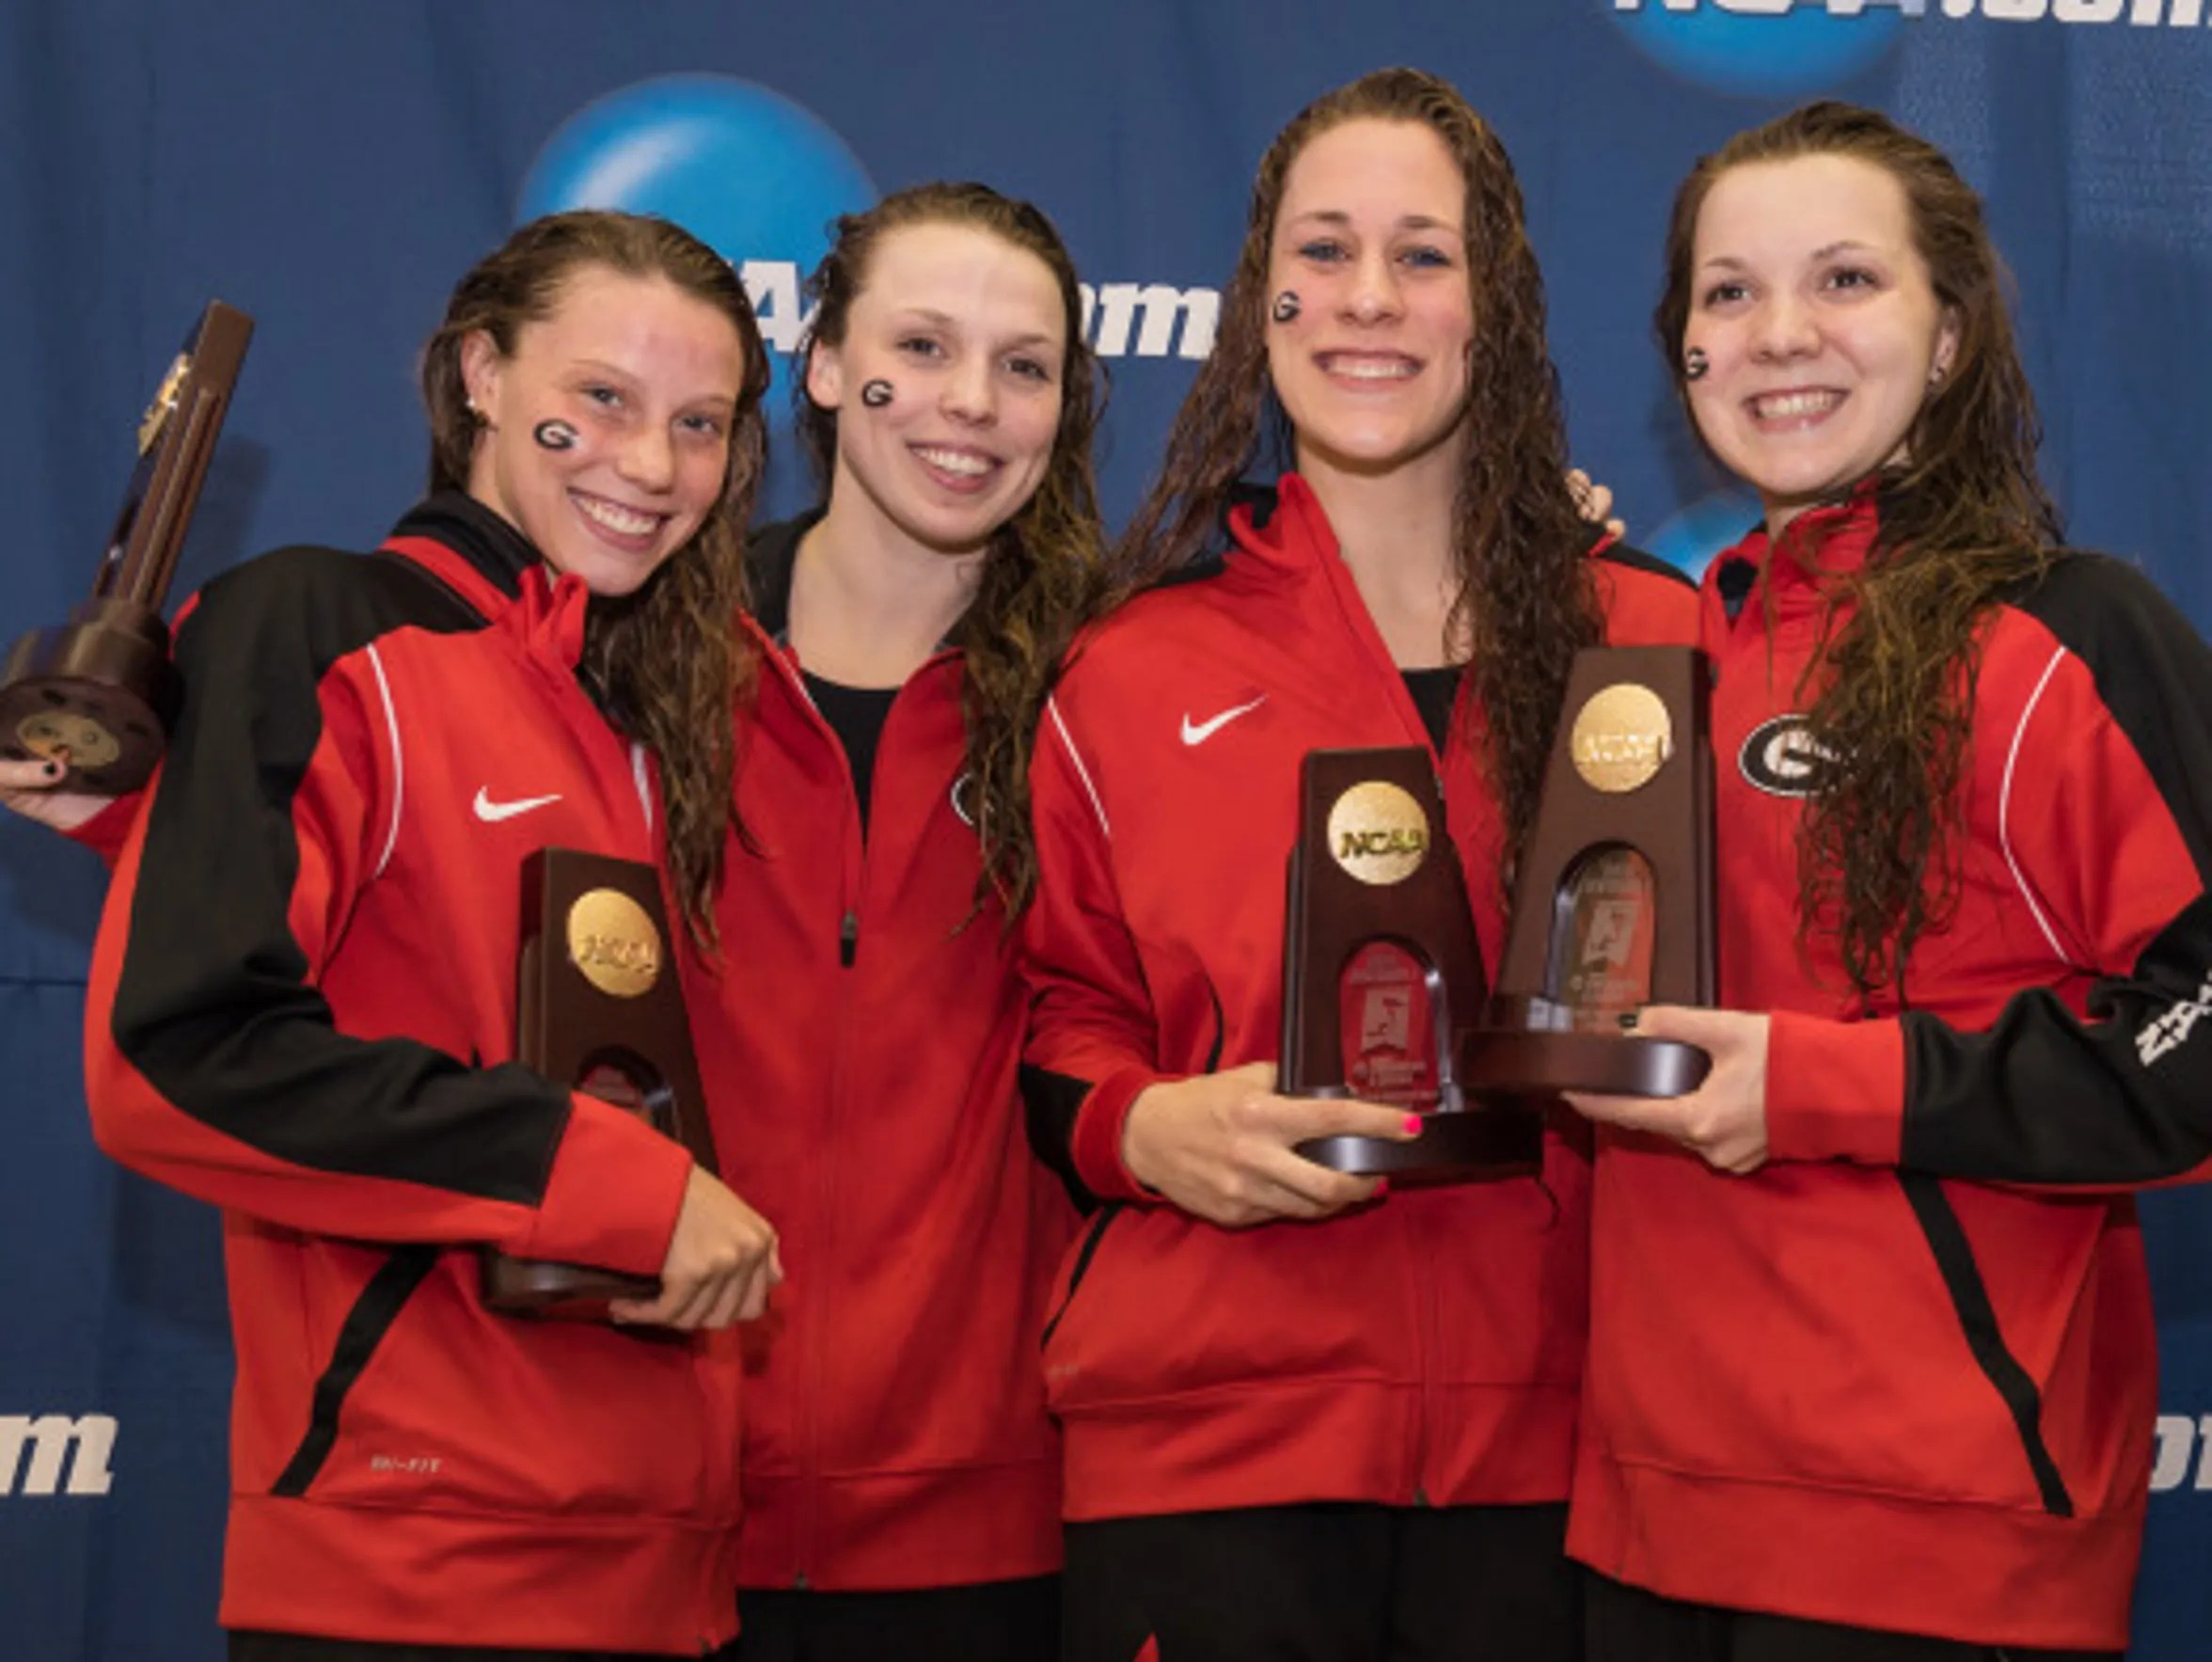 Hali Flickinger (left) was part of the 4x200 free relay